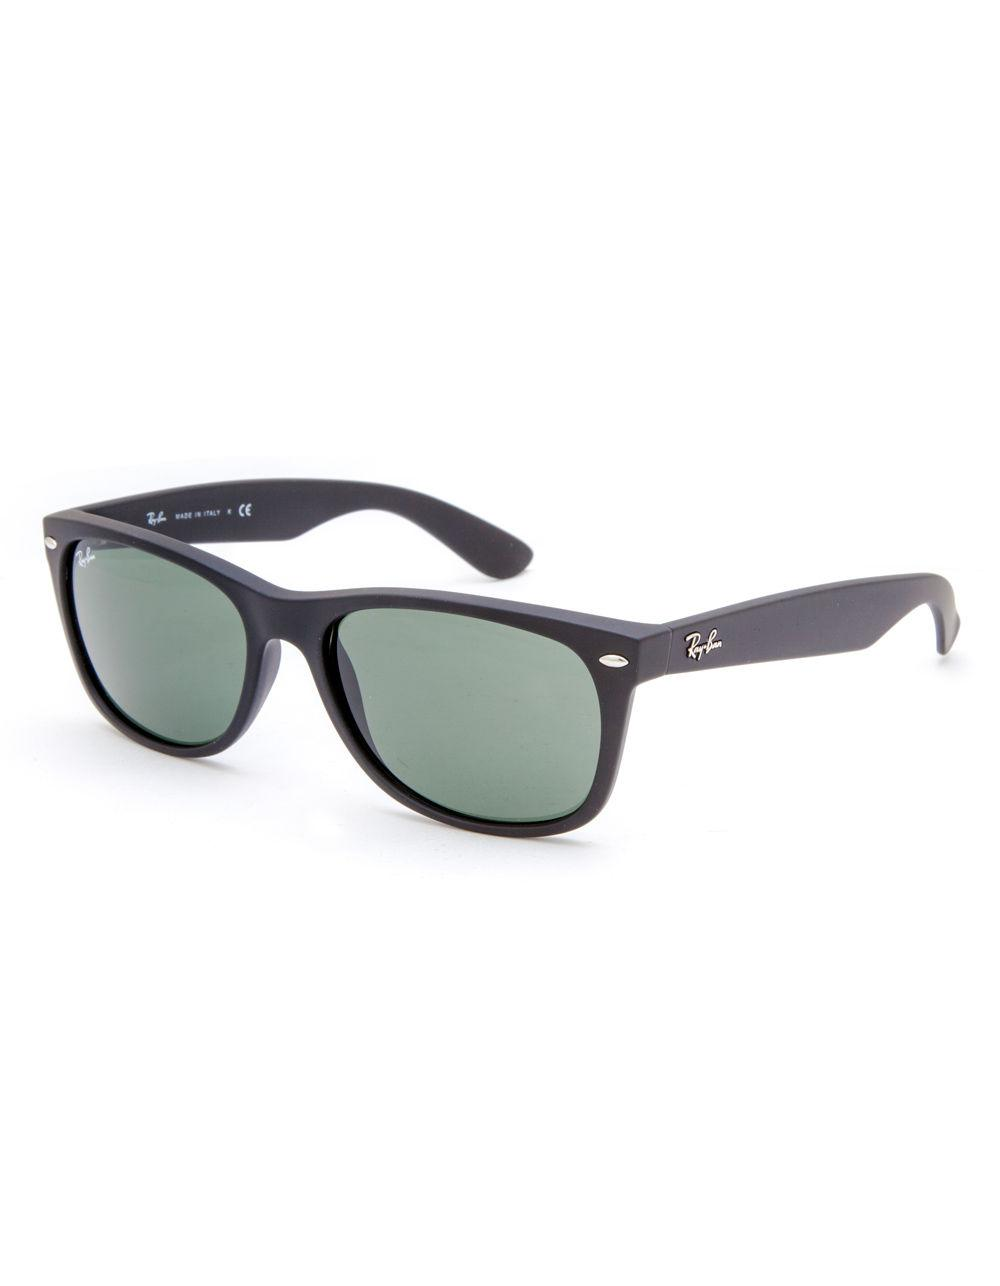 41e7b7dd7f Lyst - Ray-Ban New Wayfarer Sunglasses in Black for Men